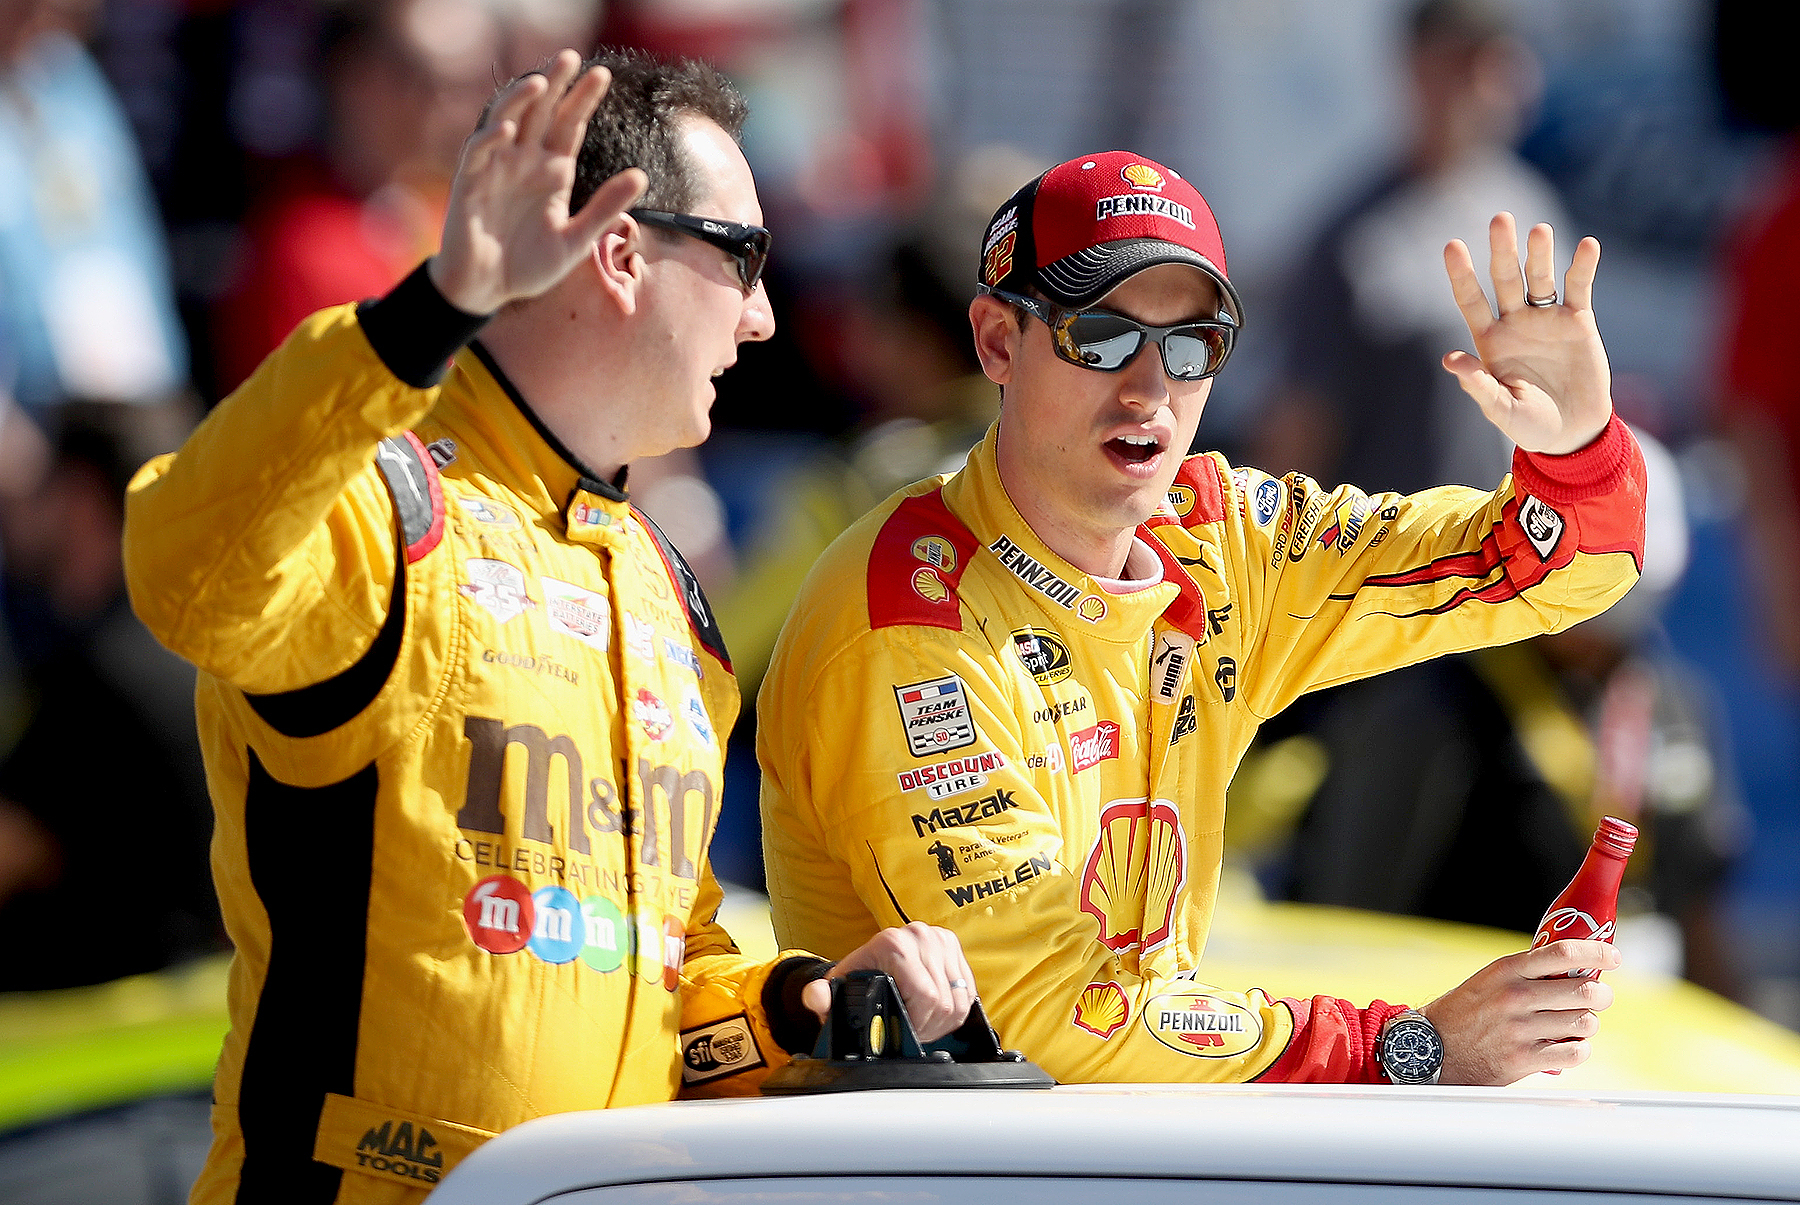 Kyle Busch, driver of the #18 M&M's Toyota, and Joey Logano, driver of the #22 Shell Pennzoil Ford, wave during driver introductions prior to the NASCAR Sprint Cup Series Can-Am 500 at Phoenix International Raceway on November 13, 2016 in Avondale, Arizona.